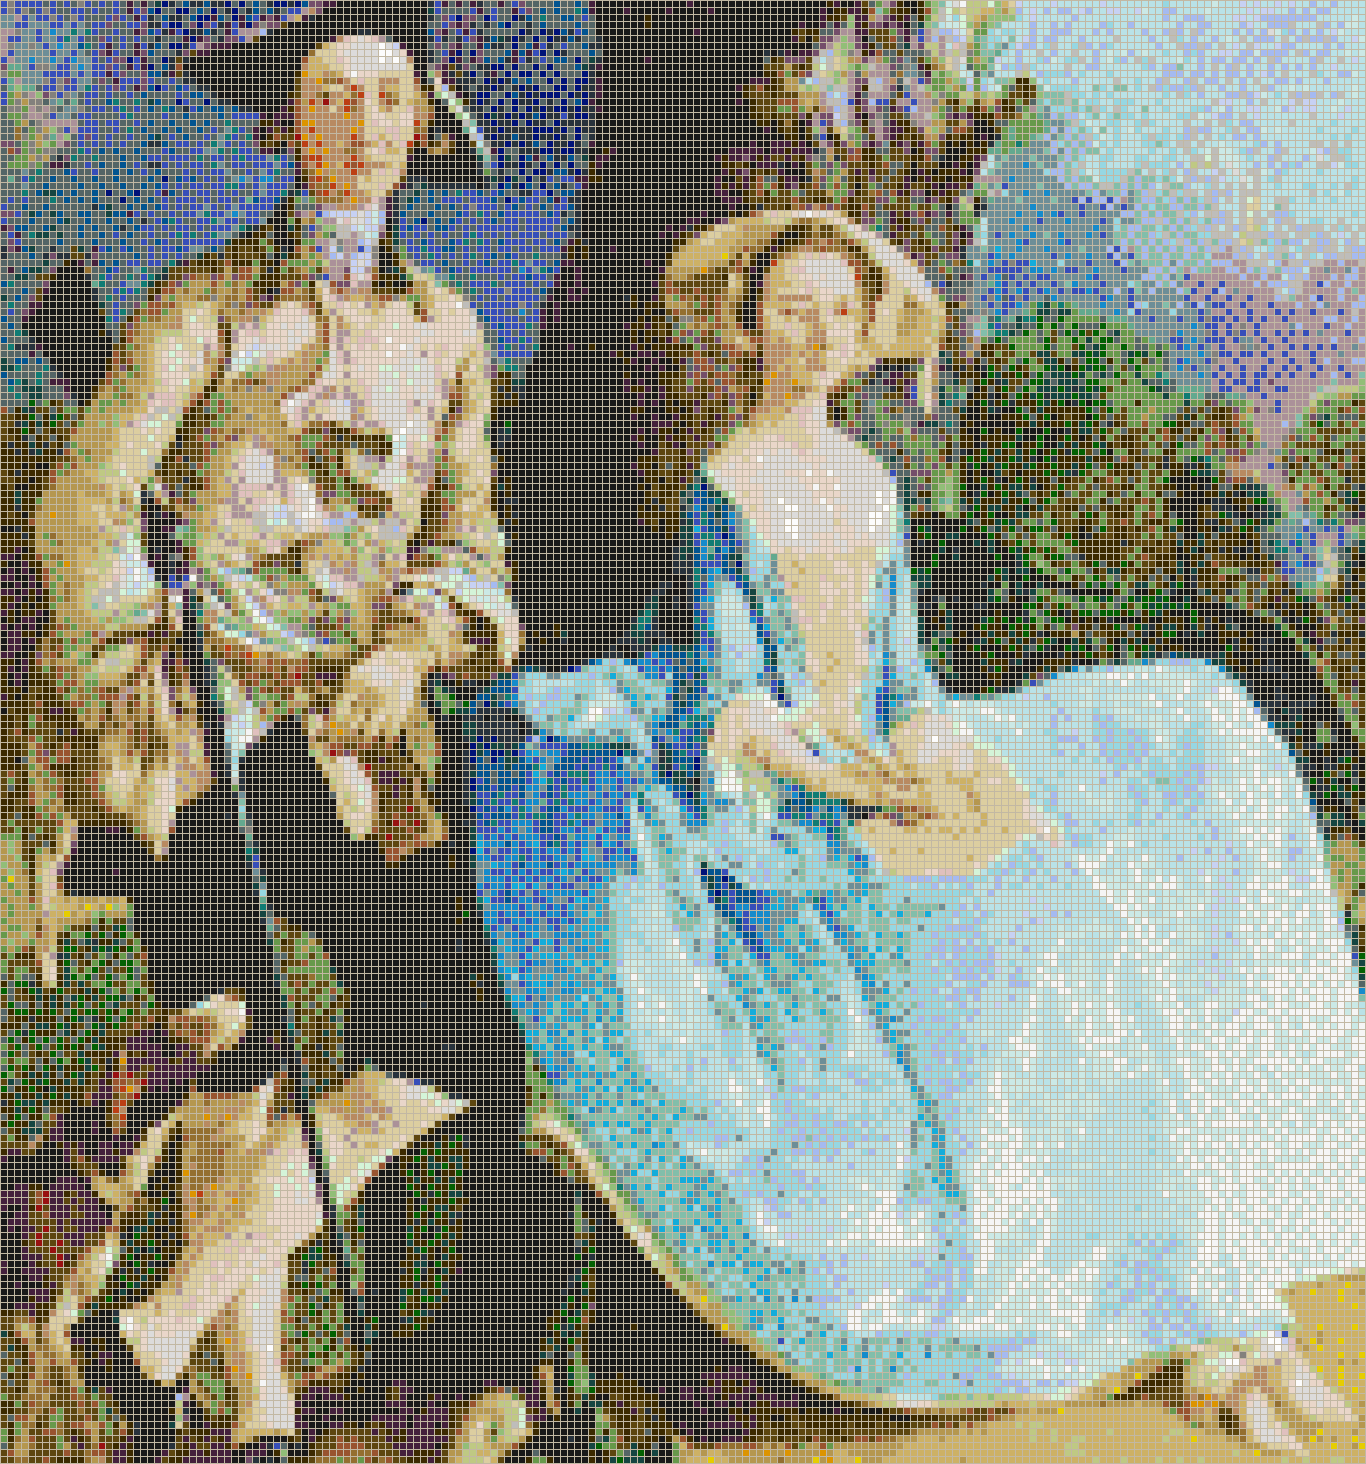 Mr and Mrs Andrews (Gainsborough) - Mosaic Tile Picture Art